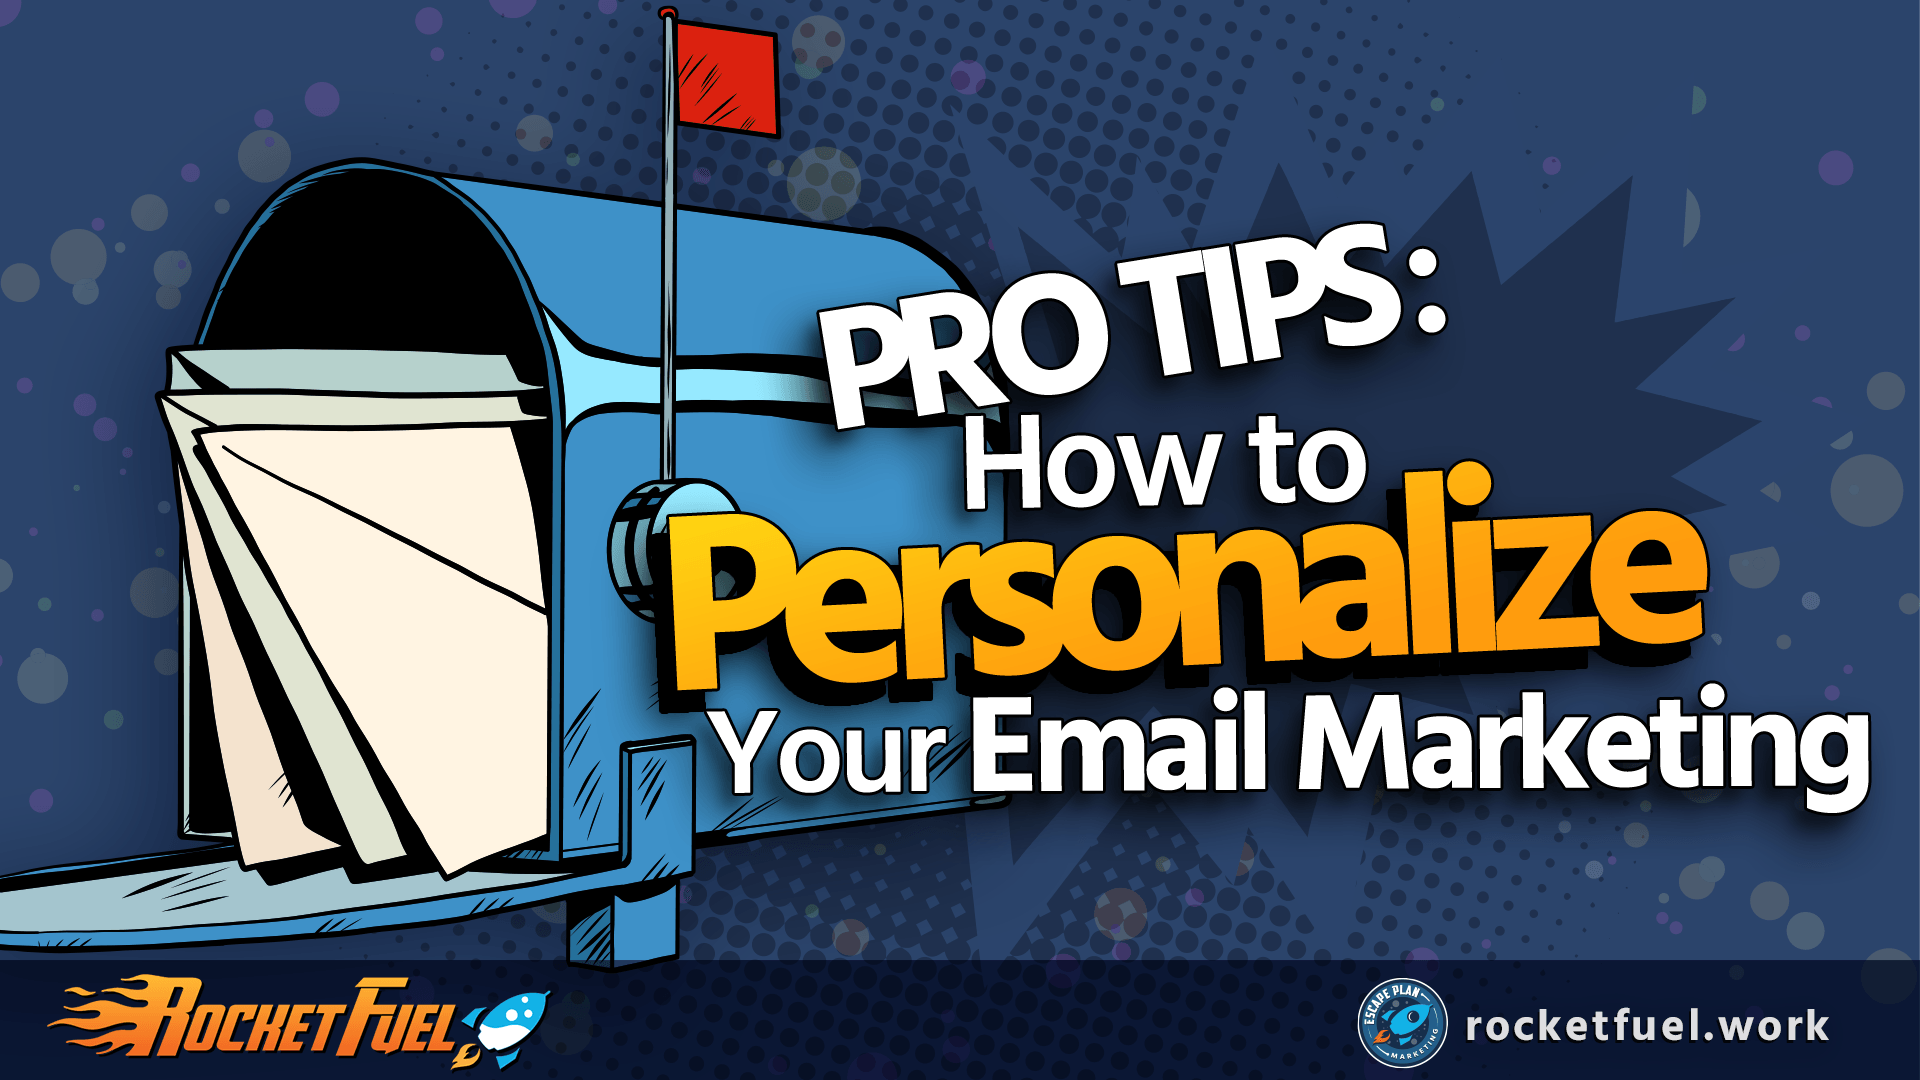 How to Personalize Your Email Marketing